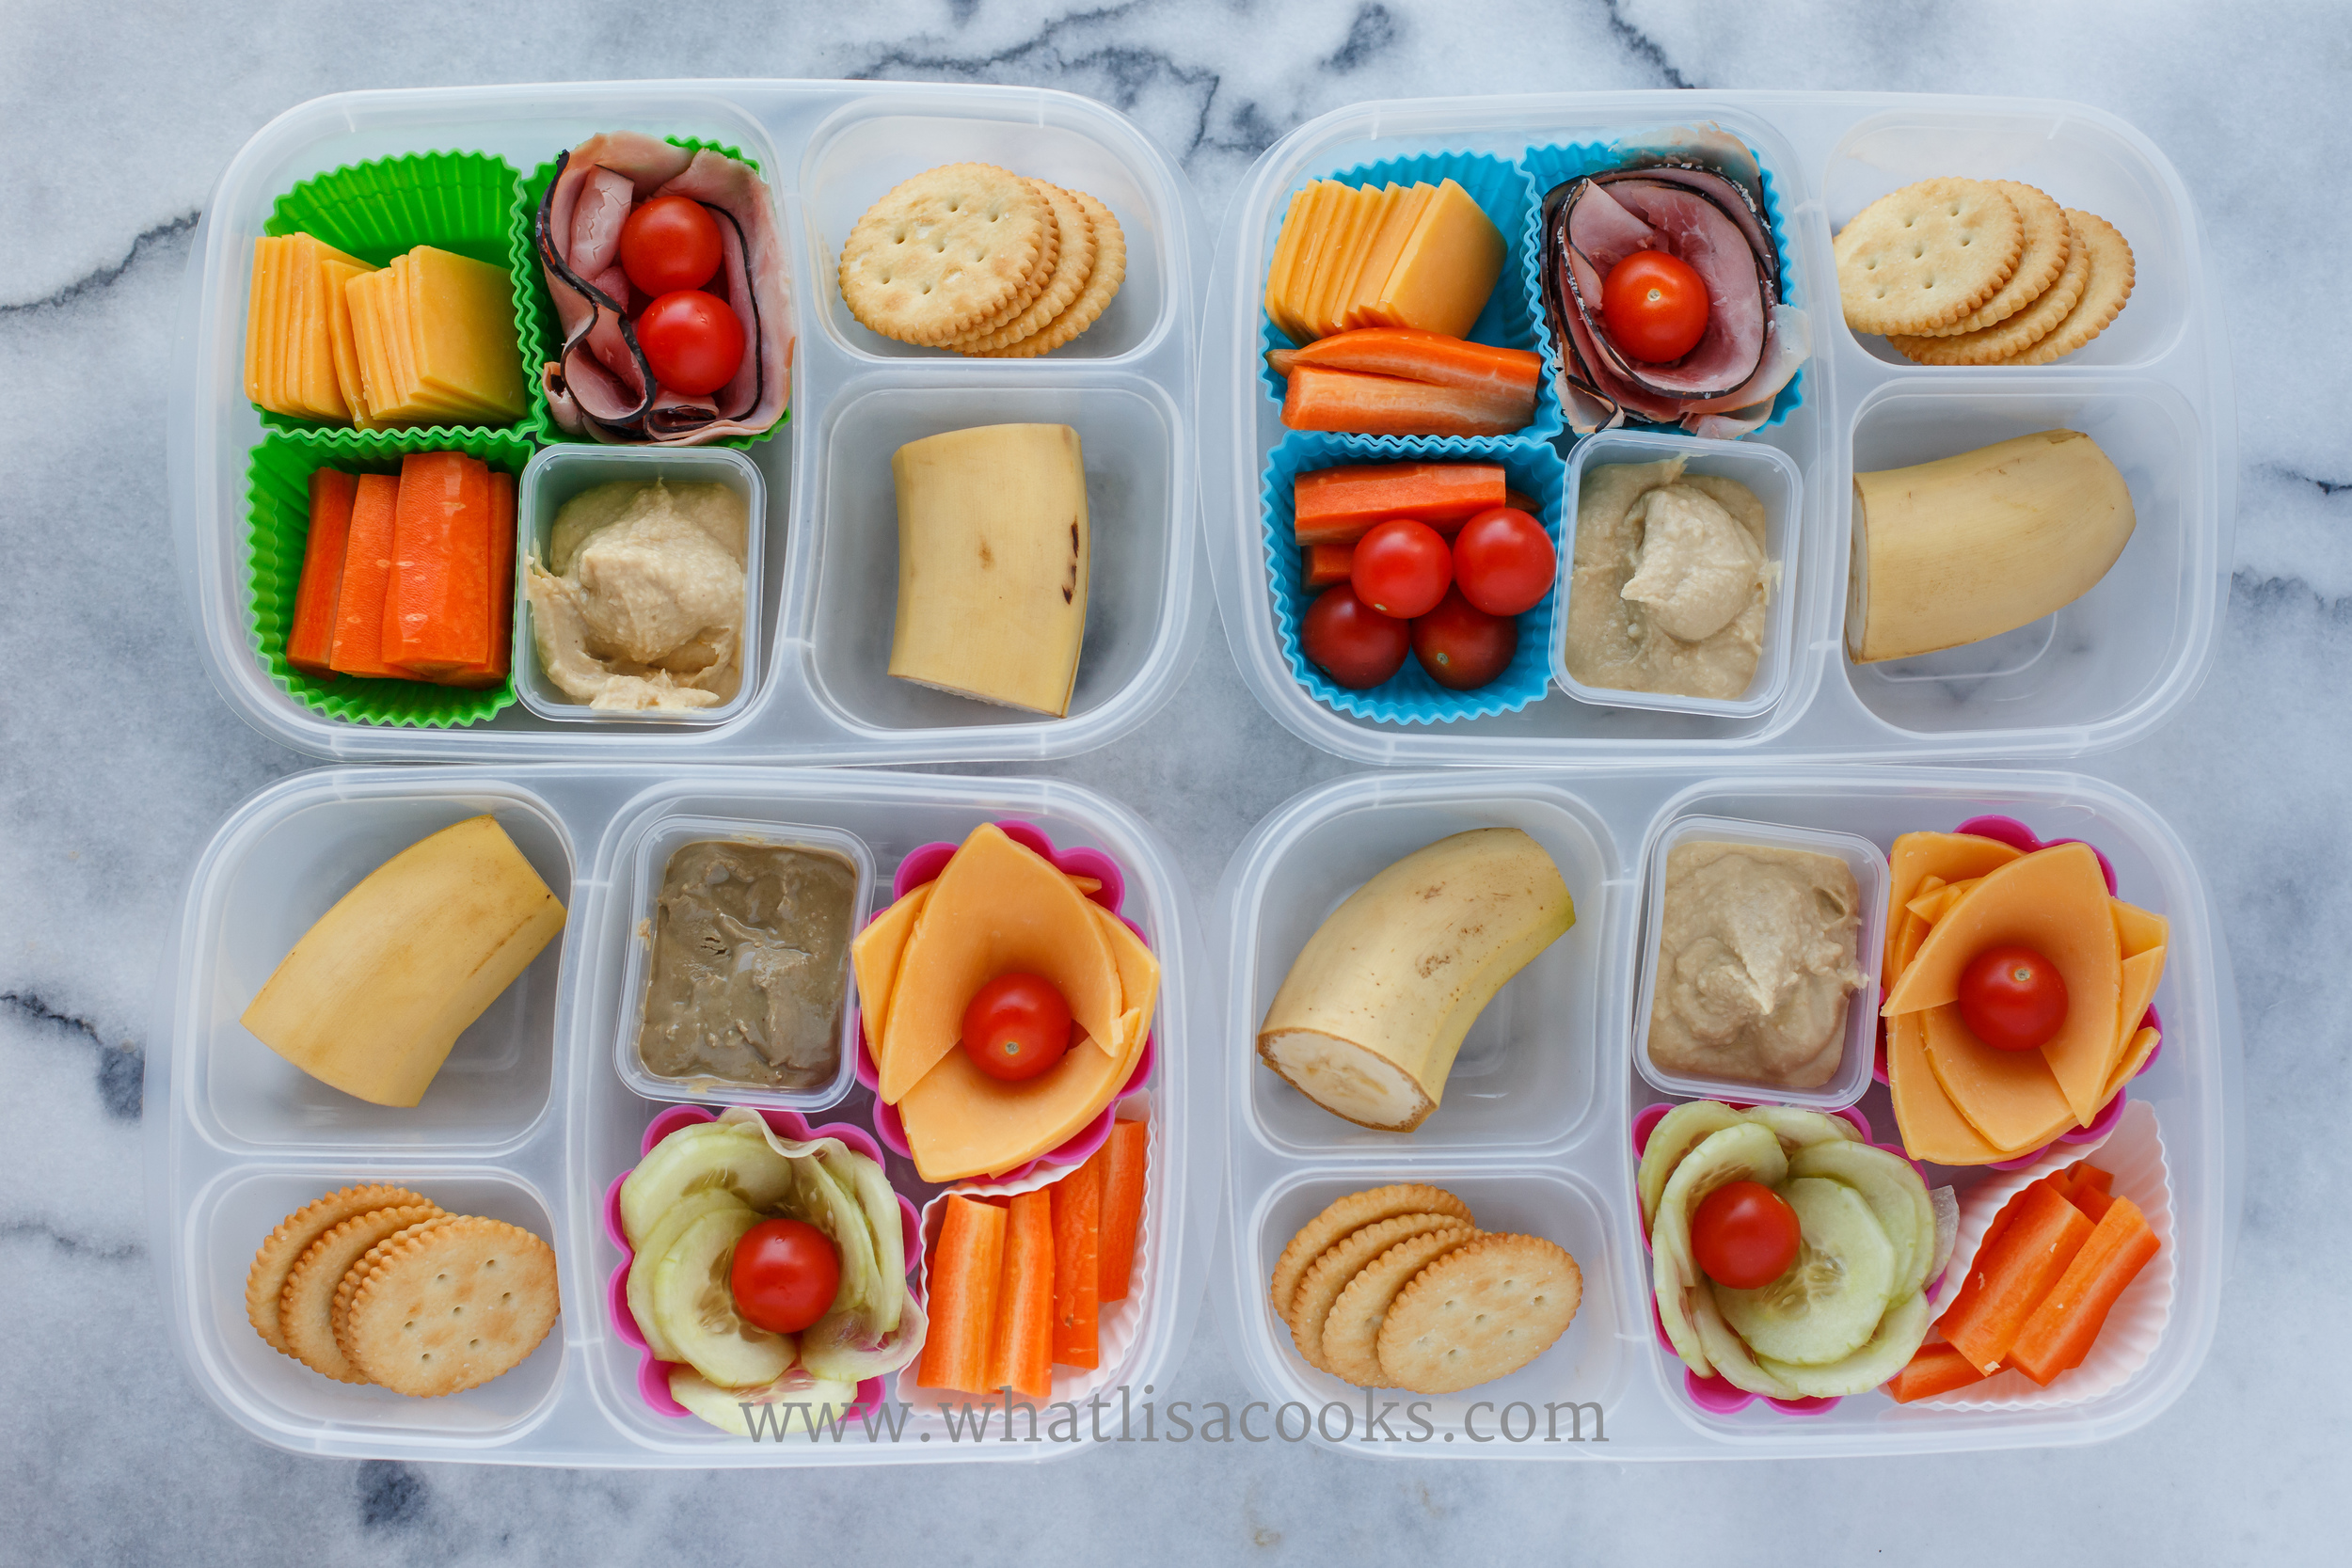 Cheese & cracker box. With hummus (one has sunbutter), carrots, tomatoes. Two have ham and two have cucumbers.